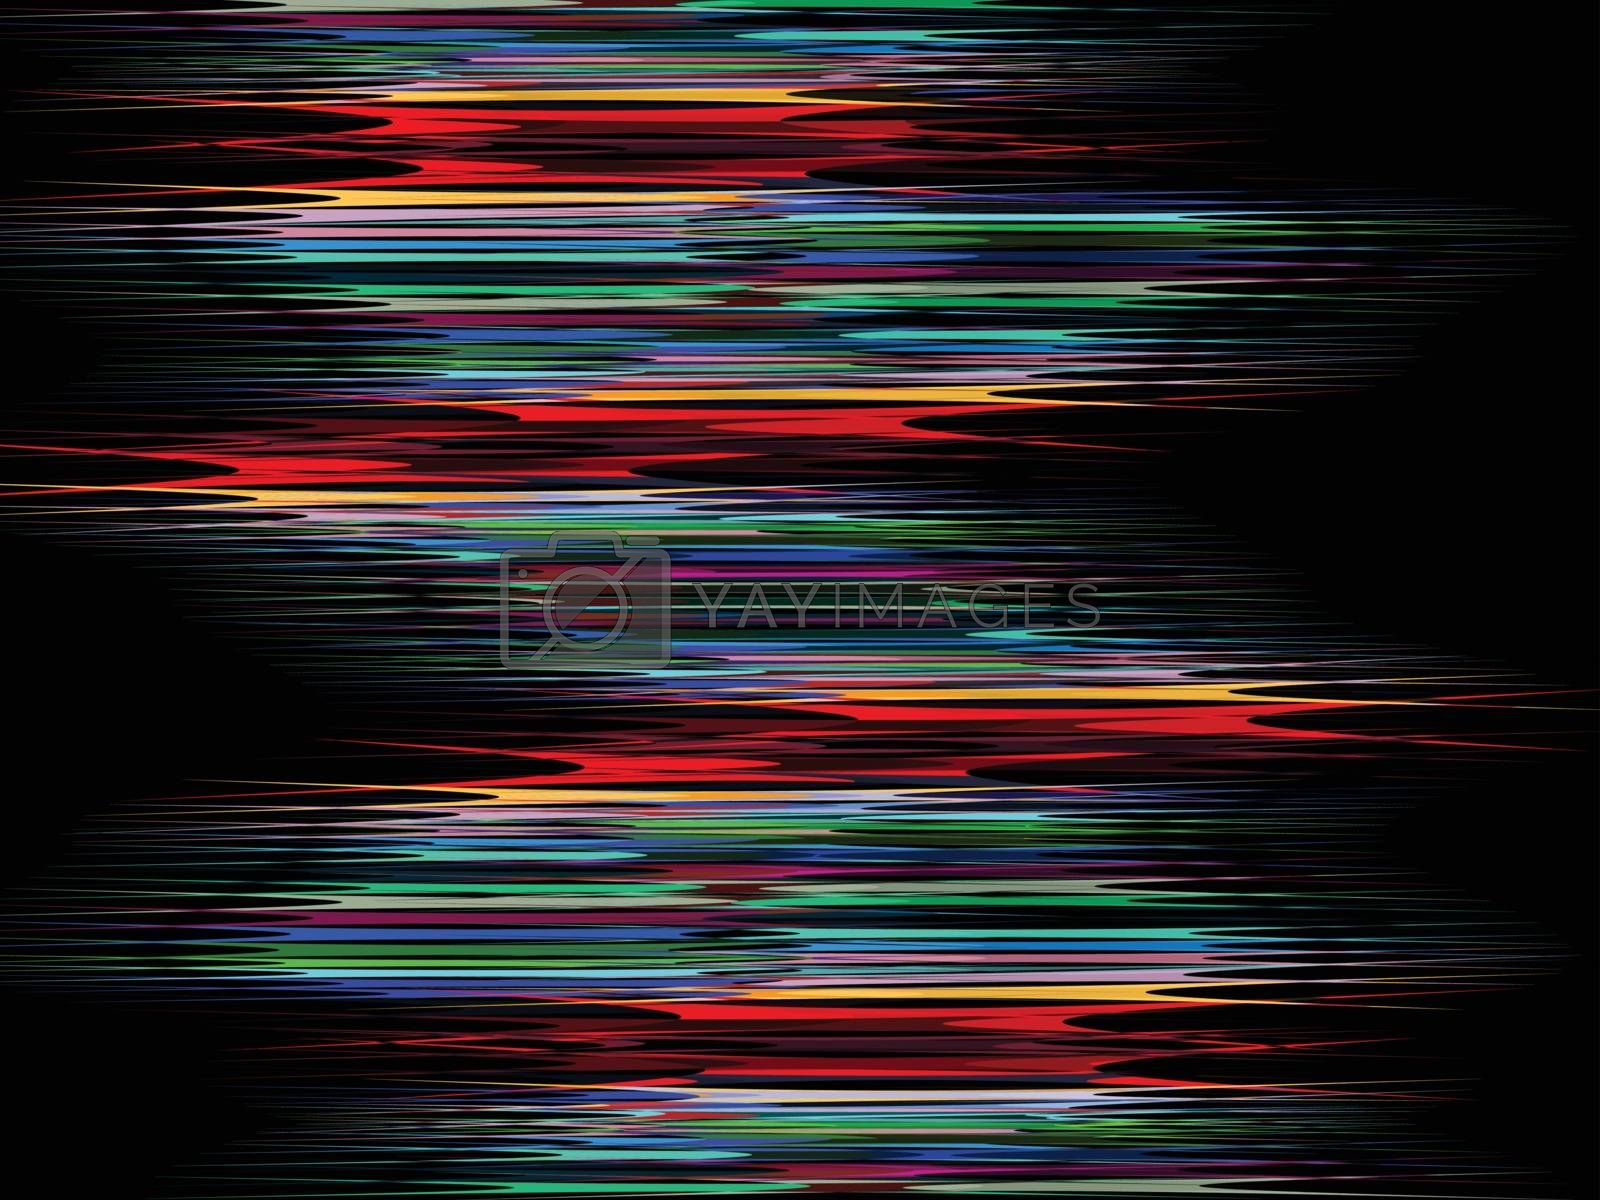 Modern glitched abstract background with colorful lines.